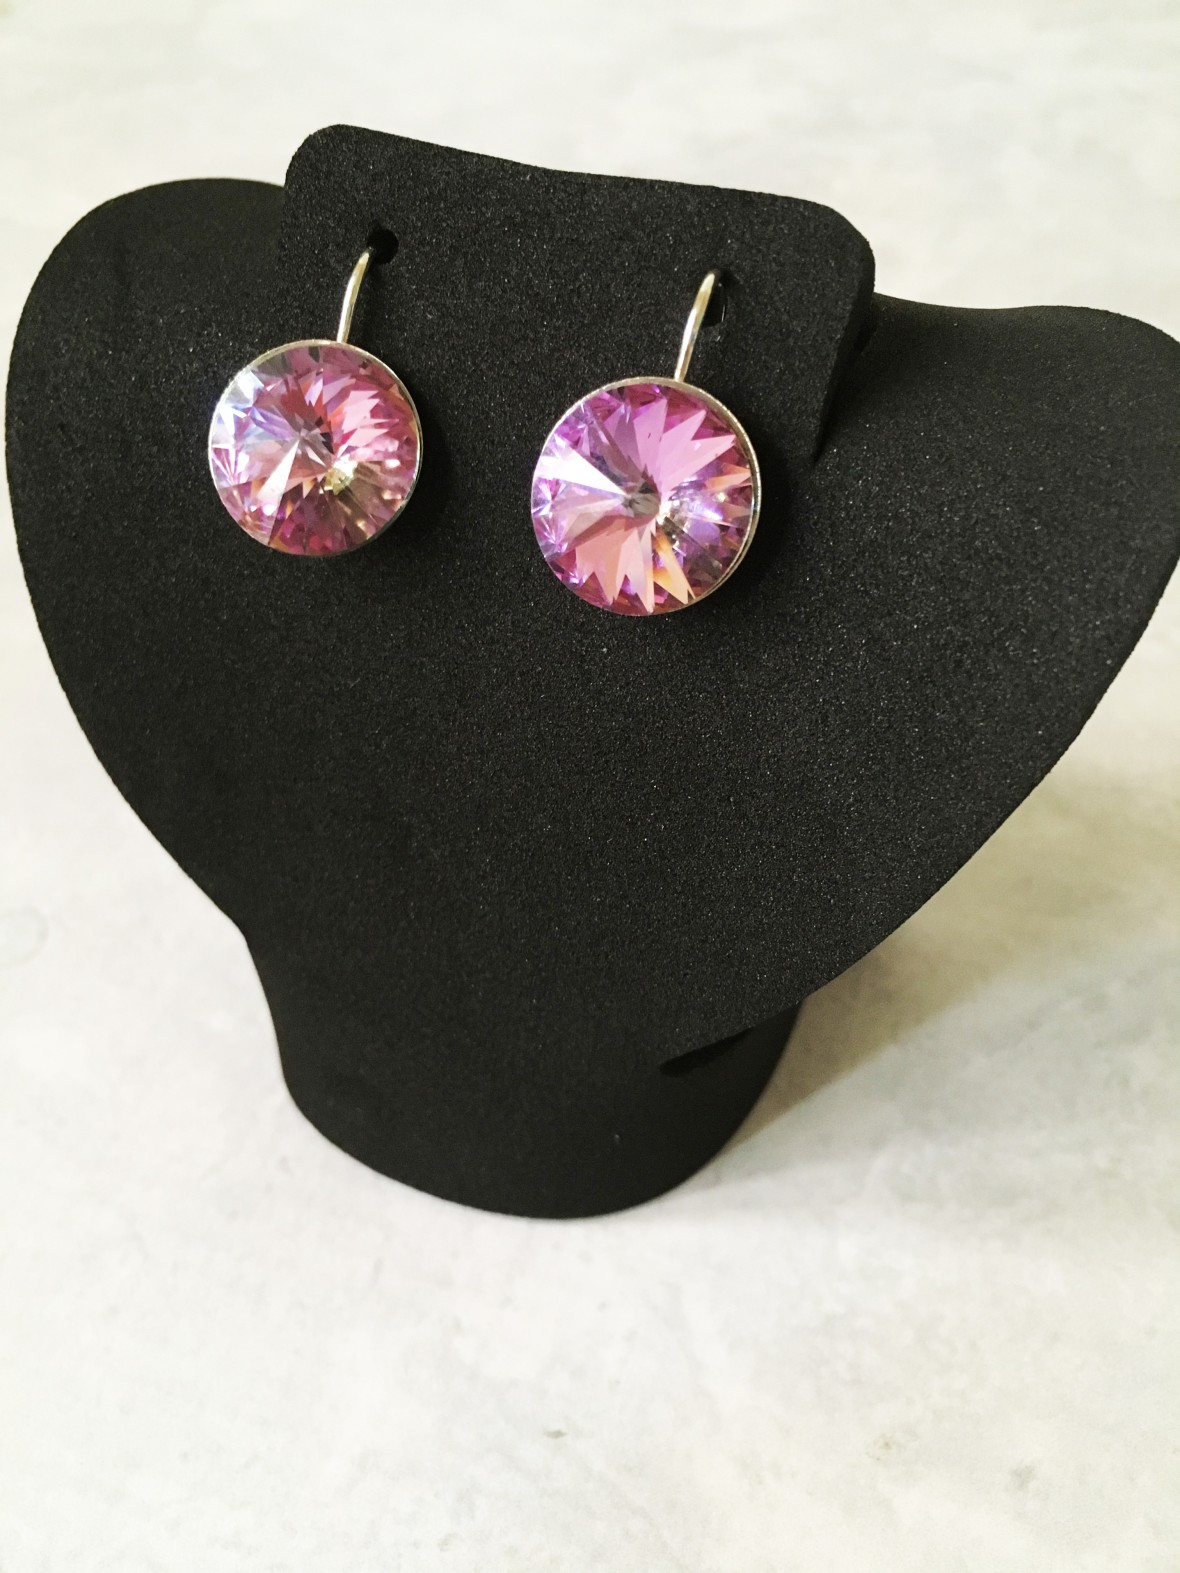 fire mountain gems - DIY earrings for your bridesmaids